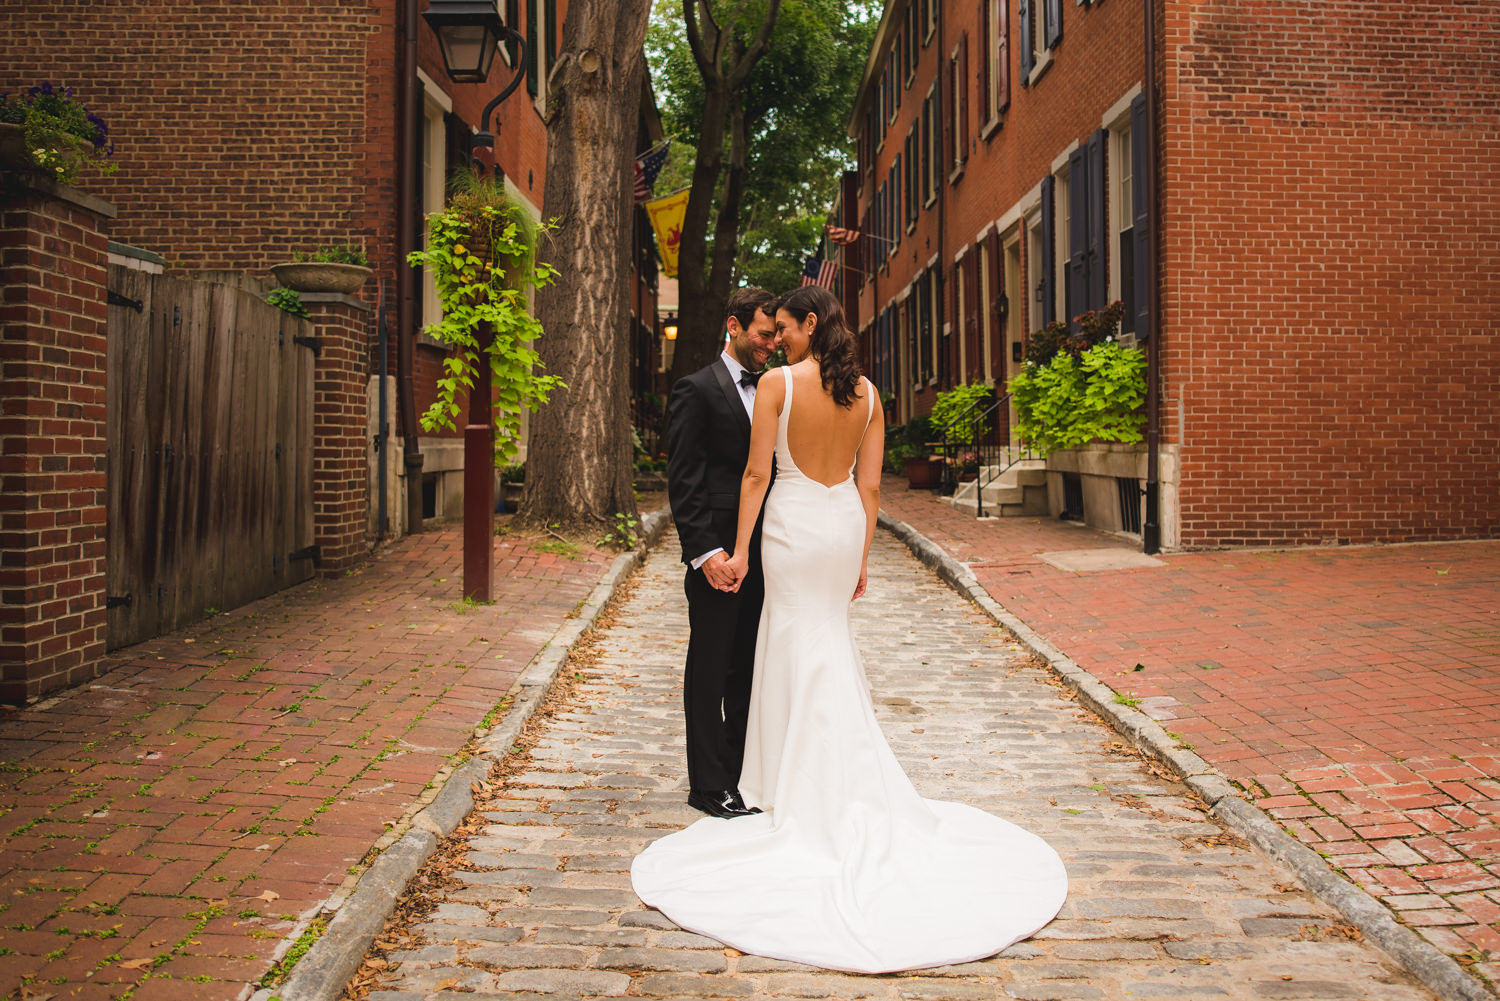 Elegant-Wedding-at-Academy-of-Music-in-Philadelphia-by-Gabriele-Stonyte-Photography-8.jpg